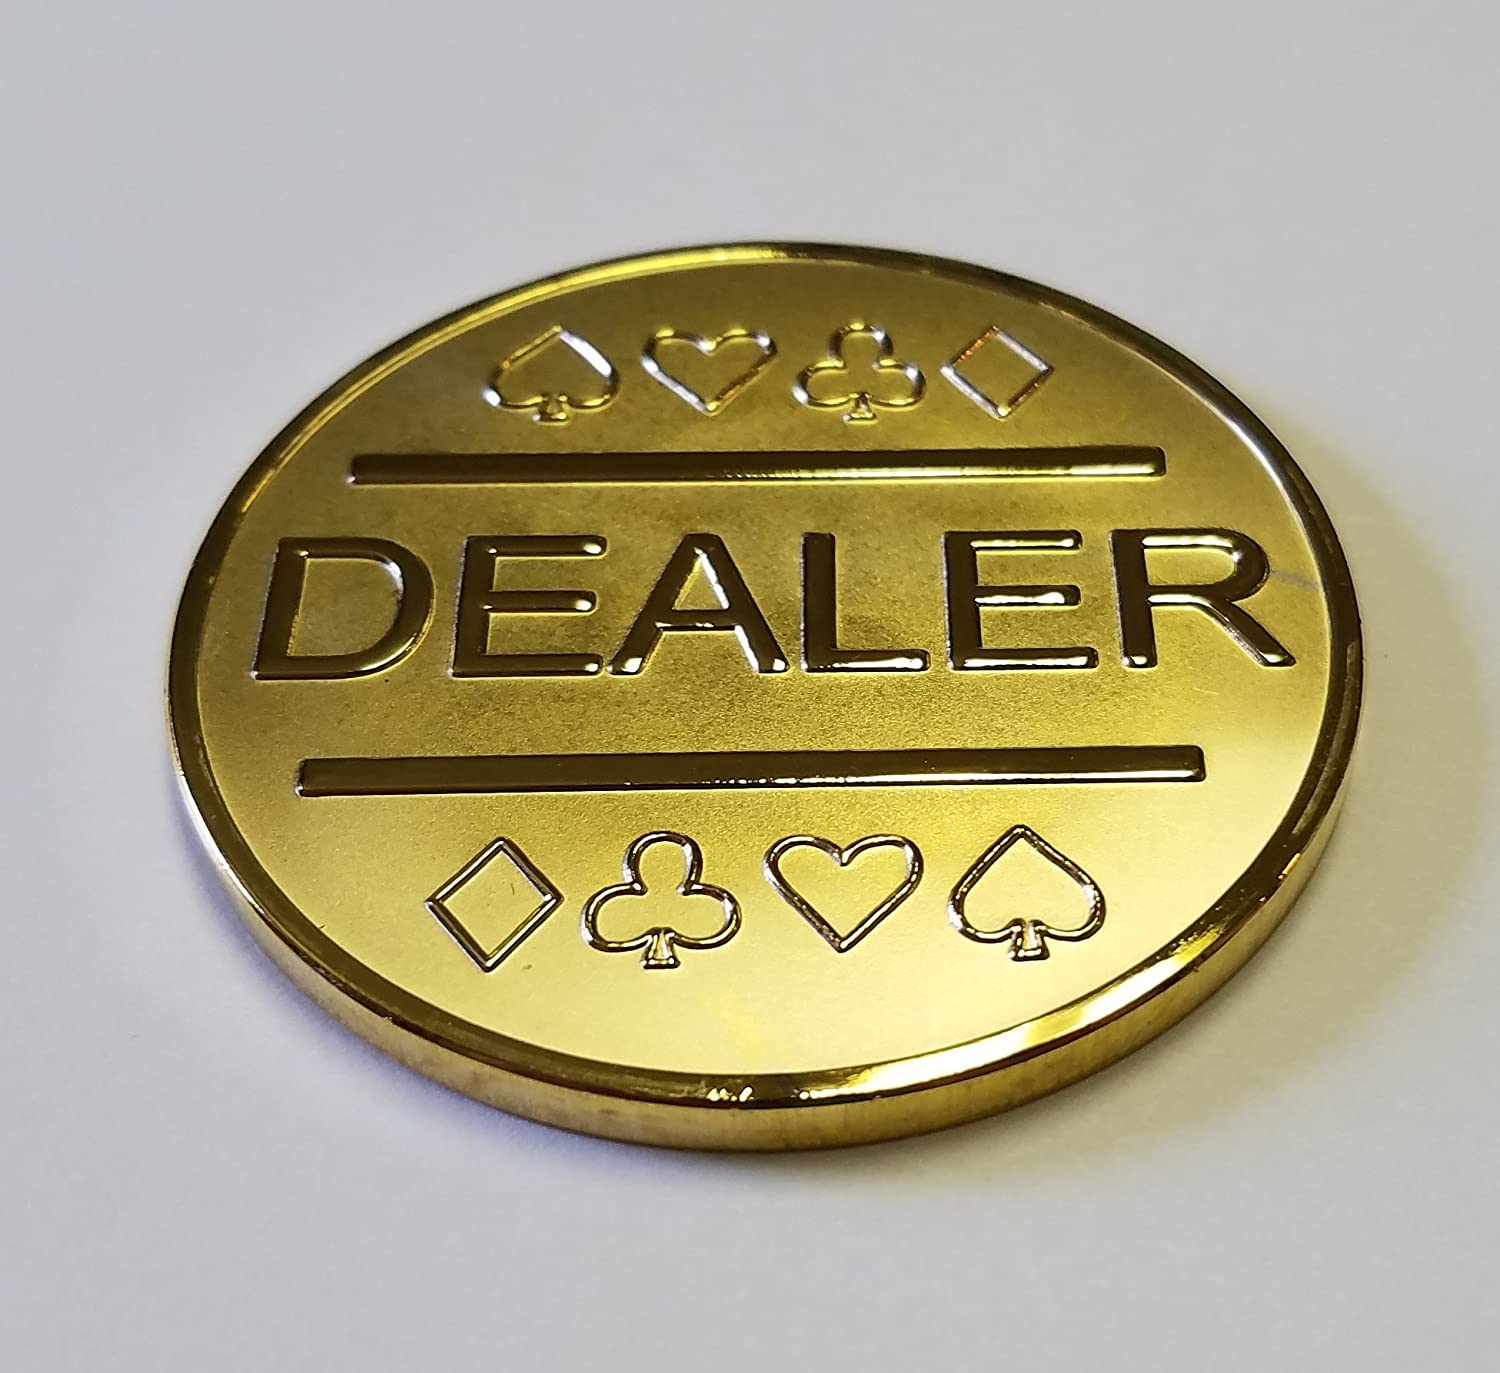 Amazon.com : Gold Plated Metal Dealer Button for Poker Games Such ...